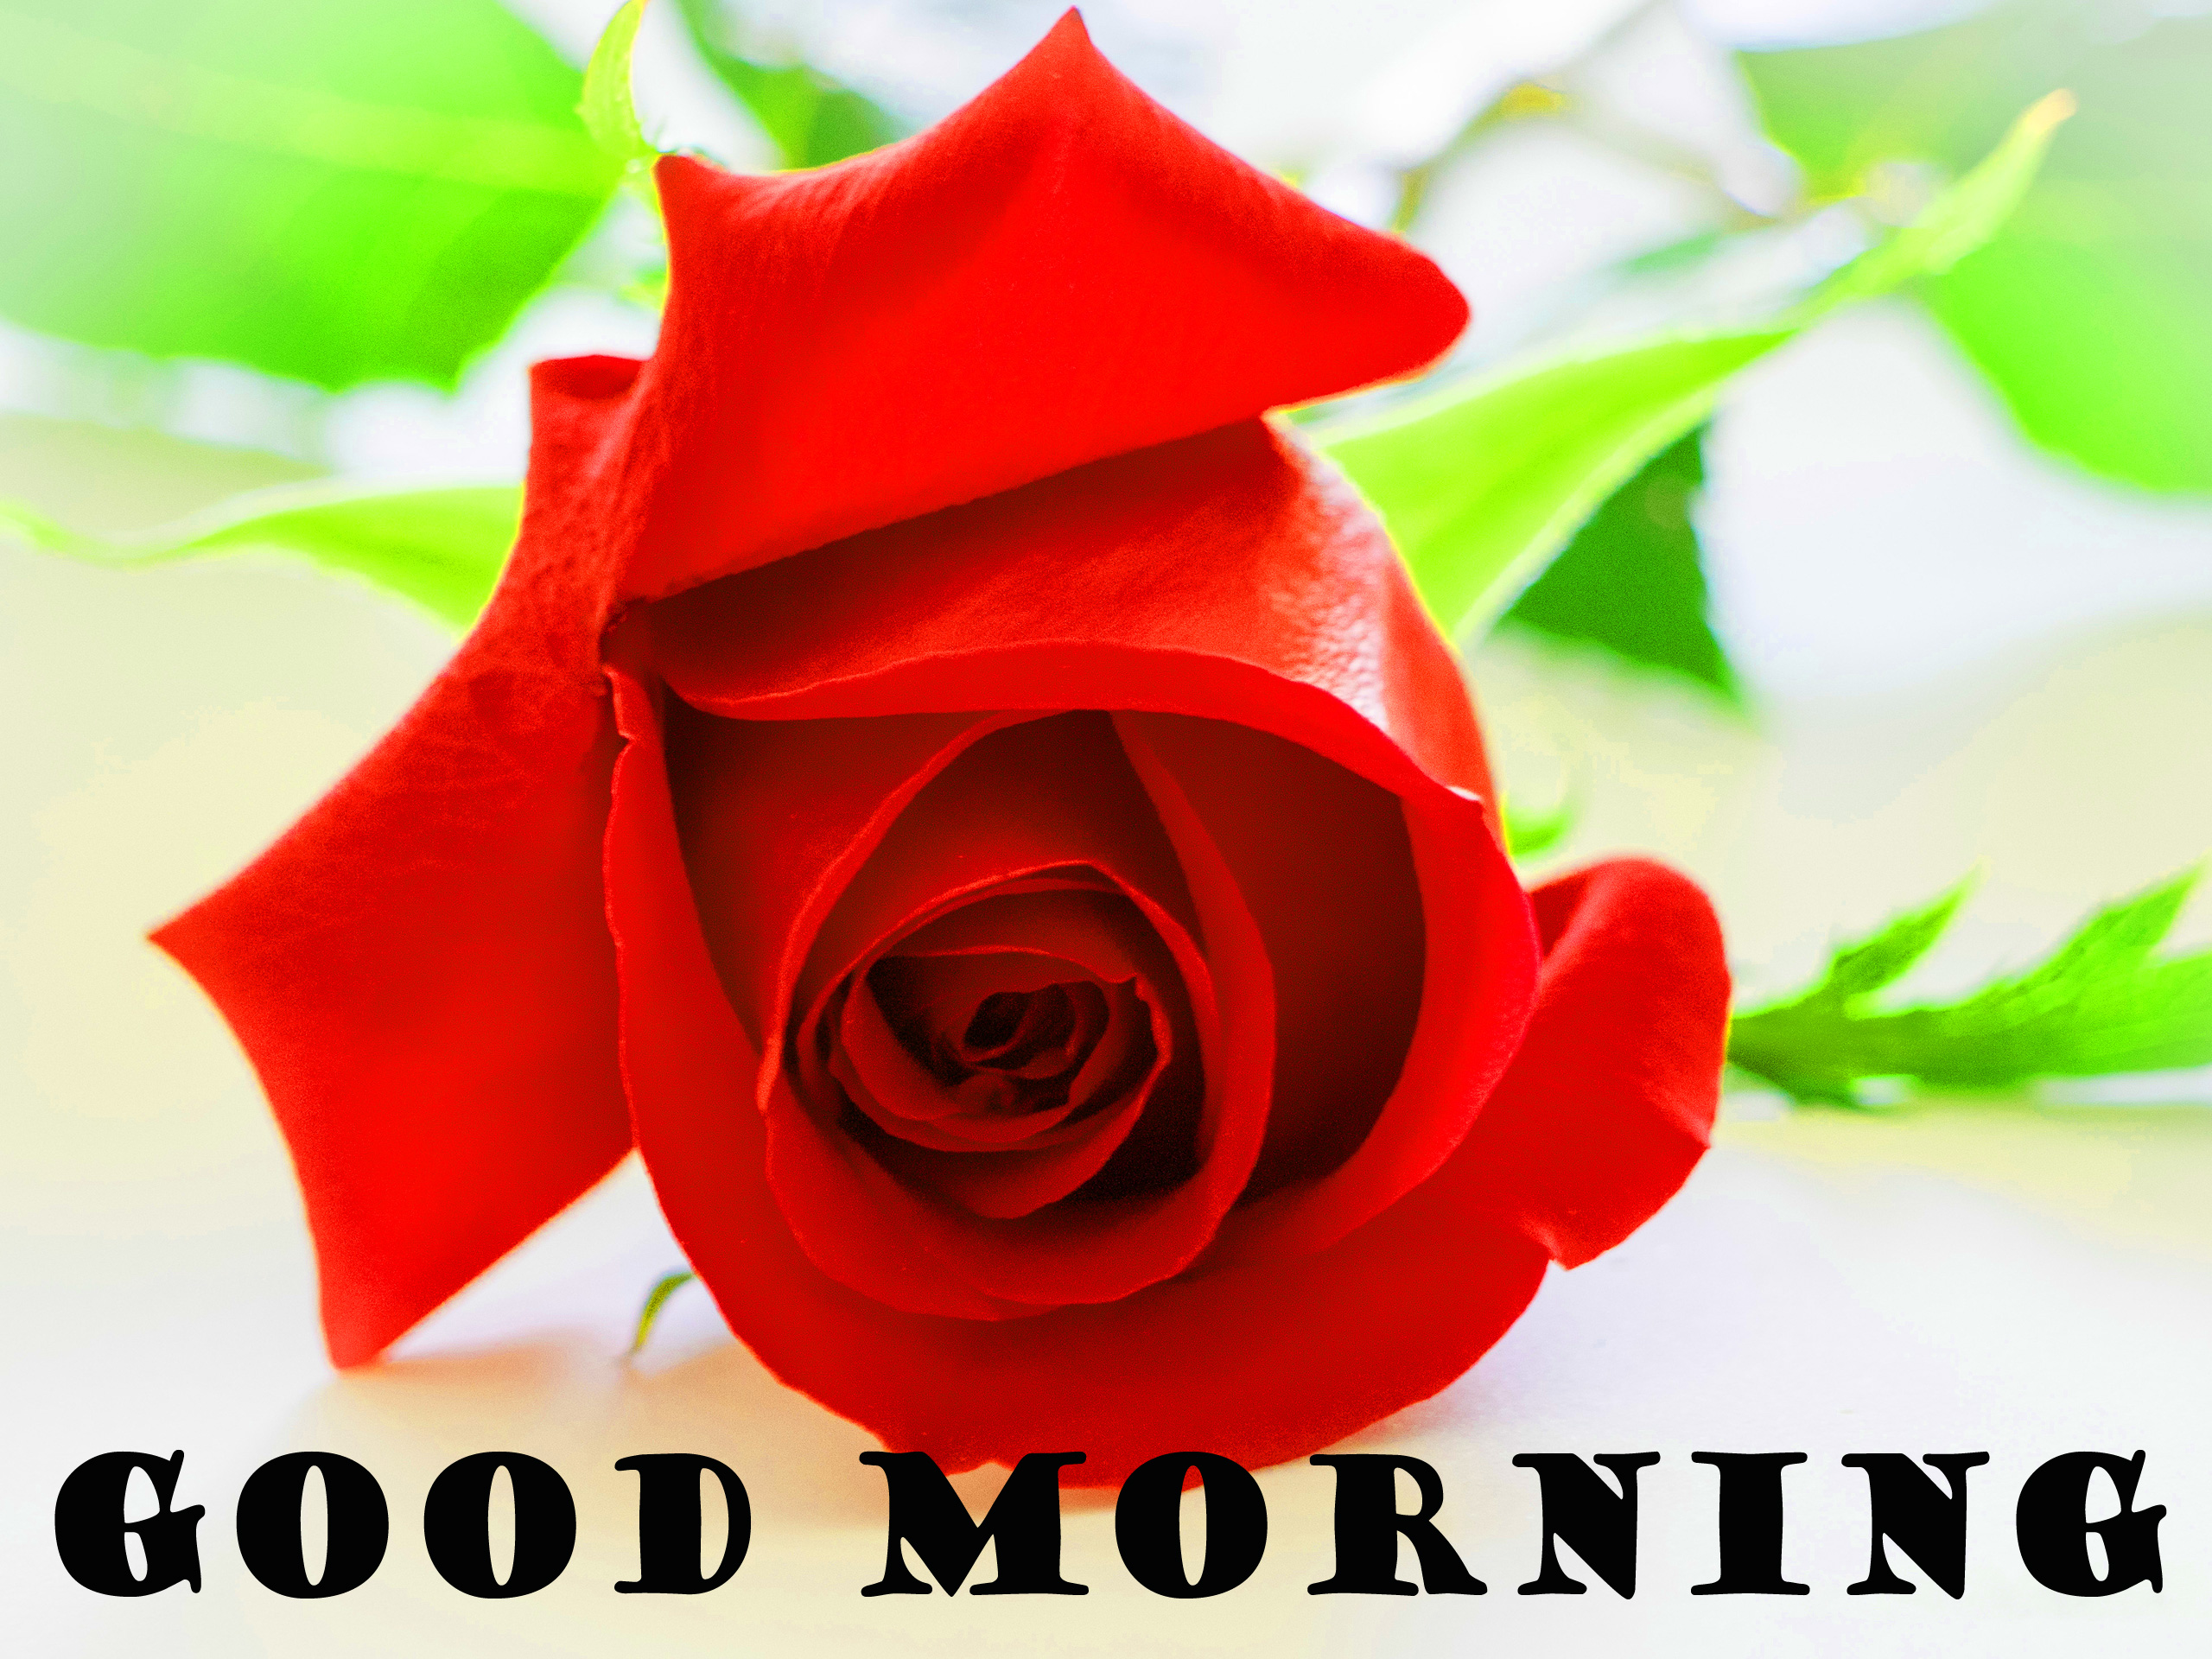 Good Morning Red Rose Images Photo Wallpaper HD